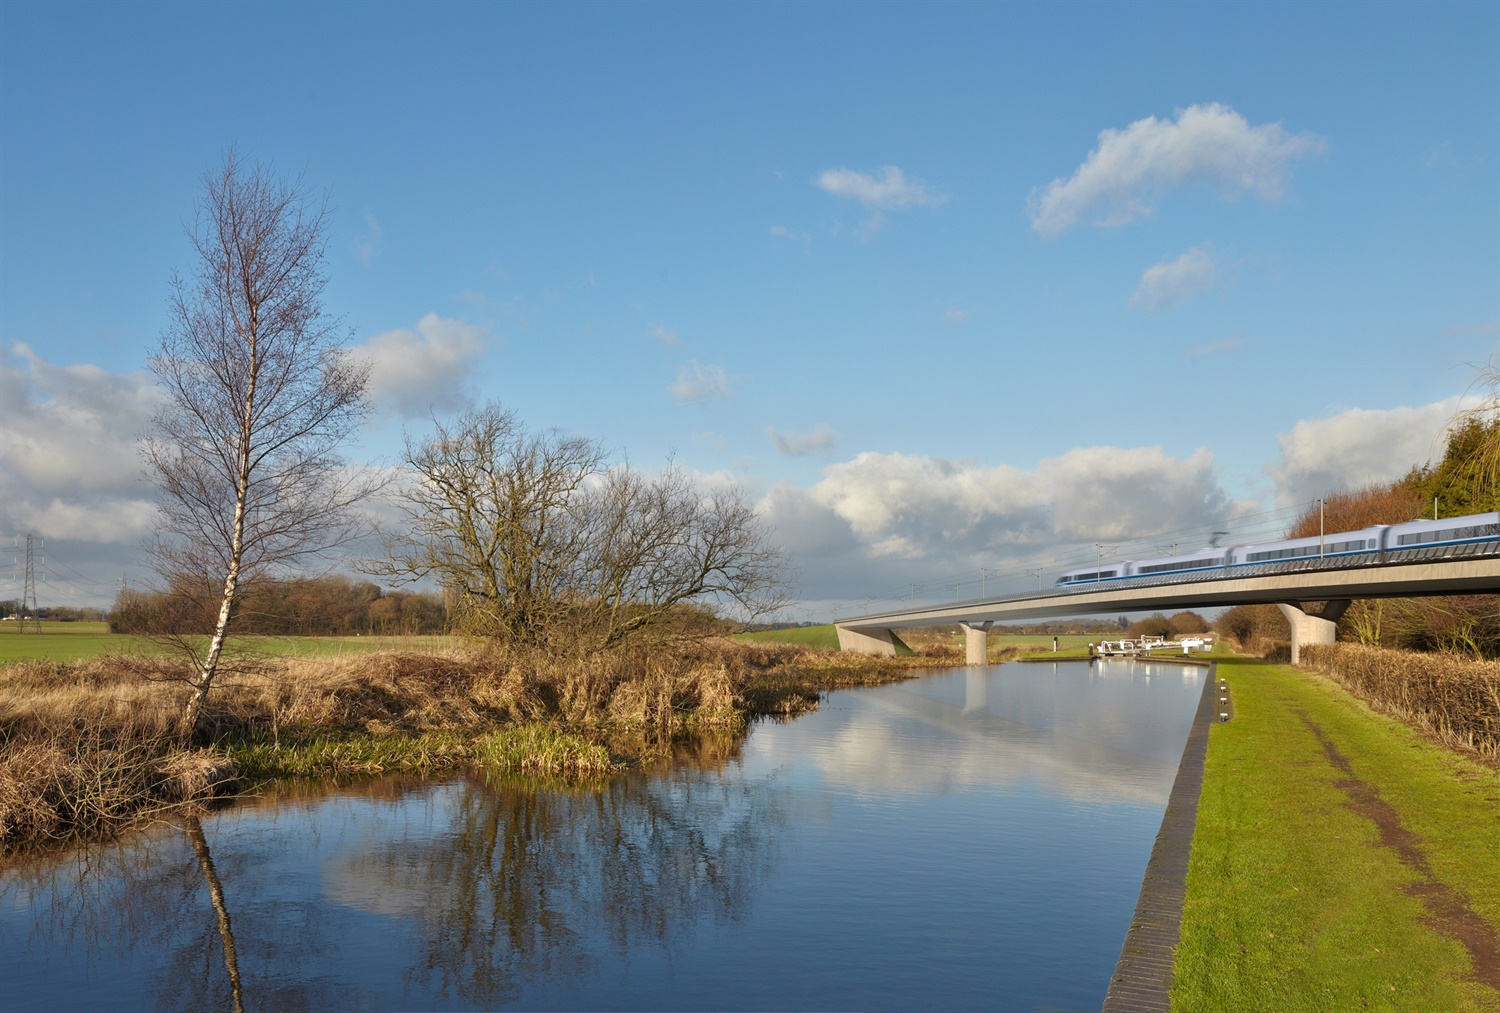 Amended HS2 works add half a billion pounds to the project's cost